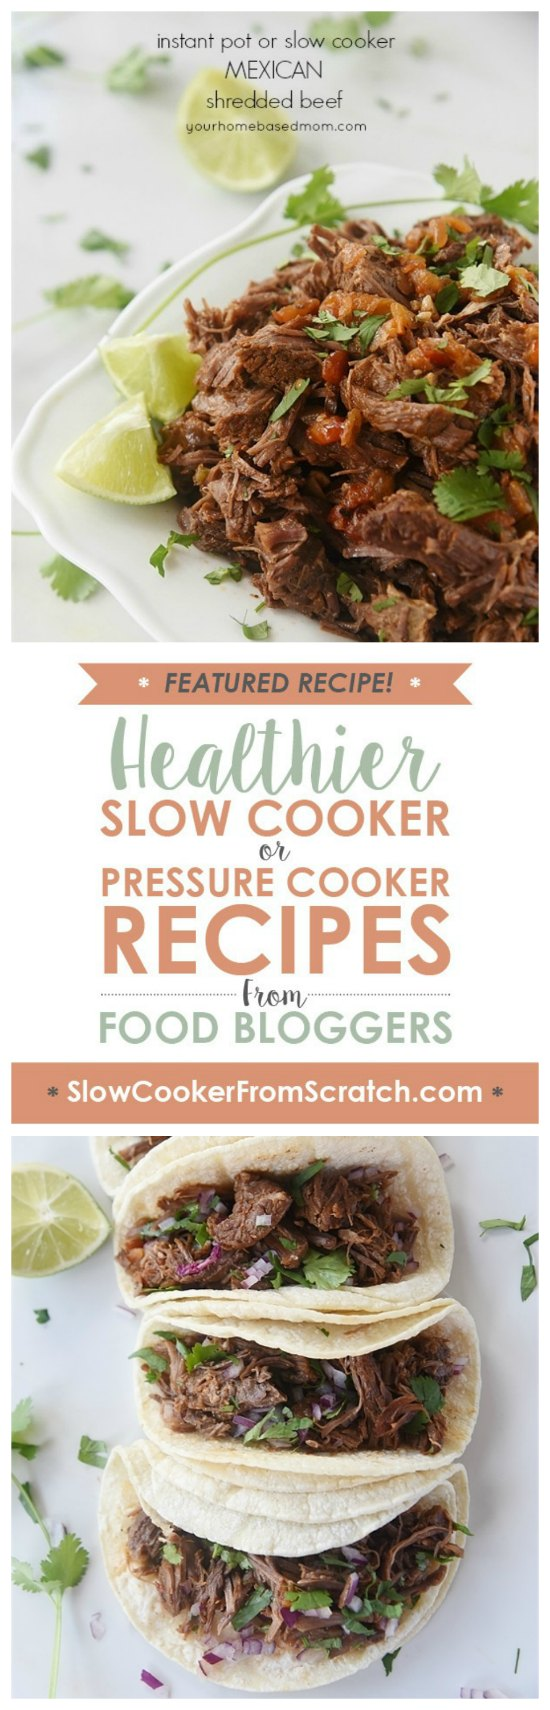 Mexican Shredded Beef (Instant Pot or Slow Cooker) from Your Homebased Mom featured on Slow Cooker or Pressure Cooker at SlowCookerFromScratch.com